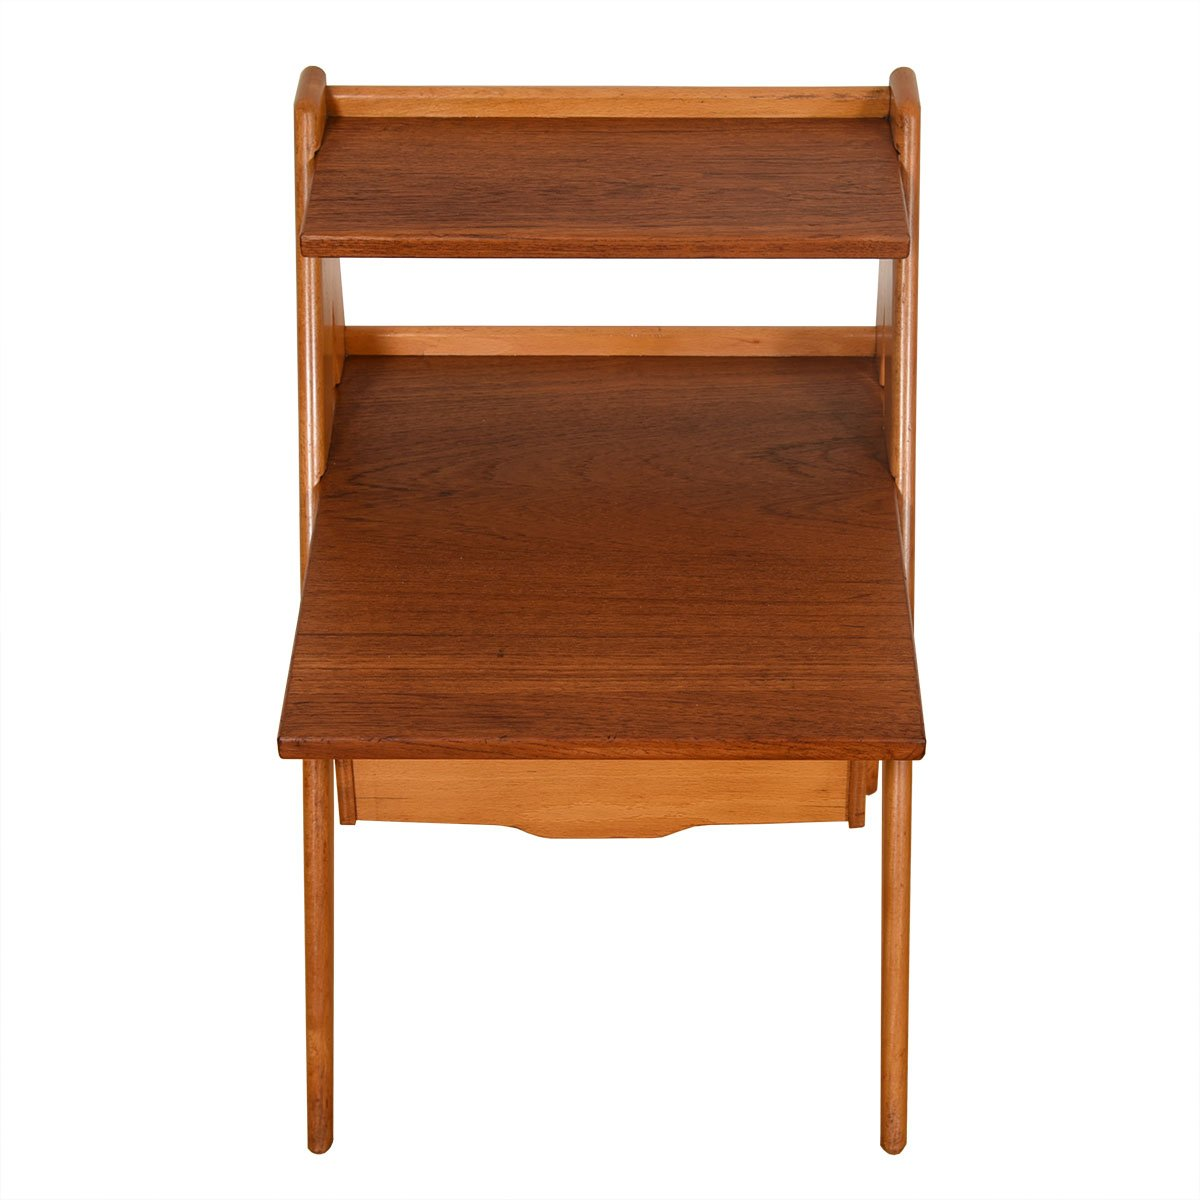 MCM Bi-Level End Table with Hairpin Legs